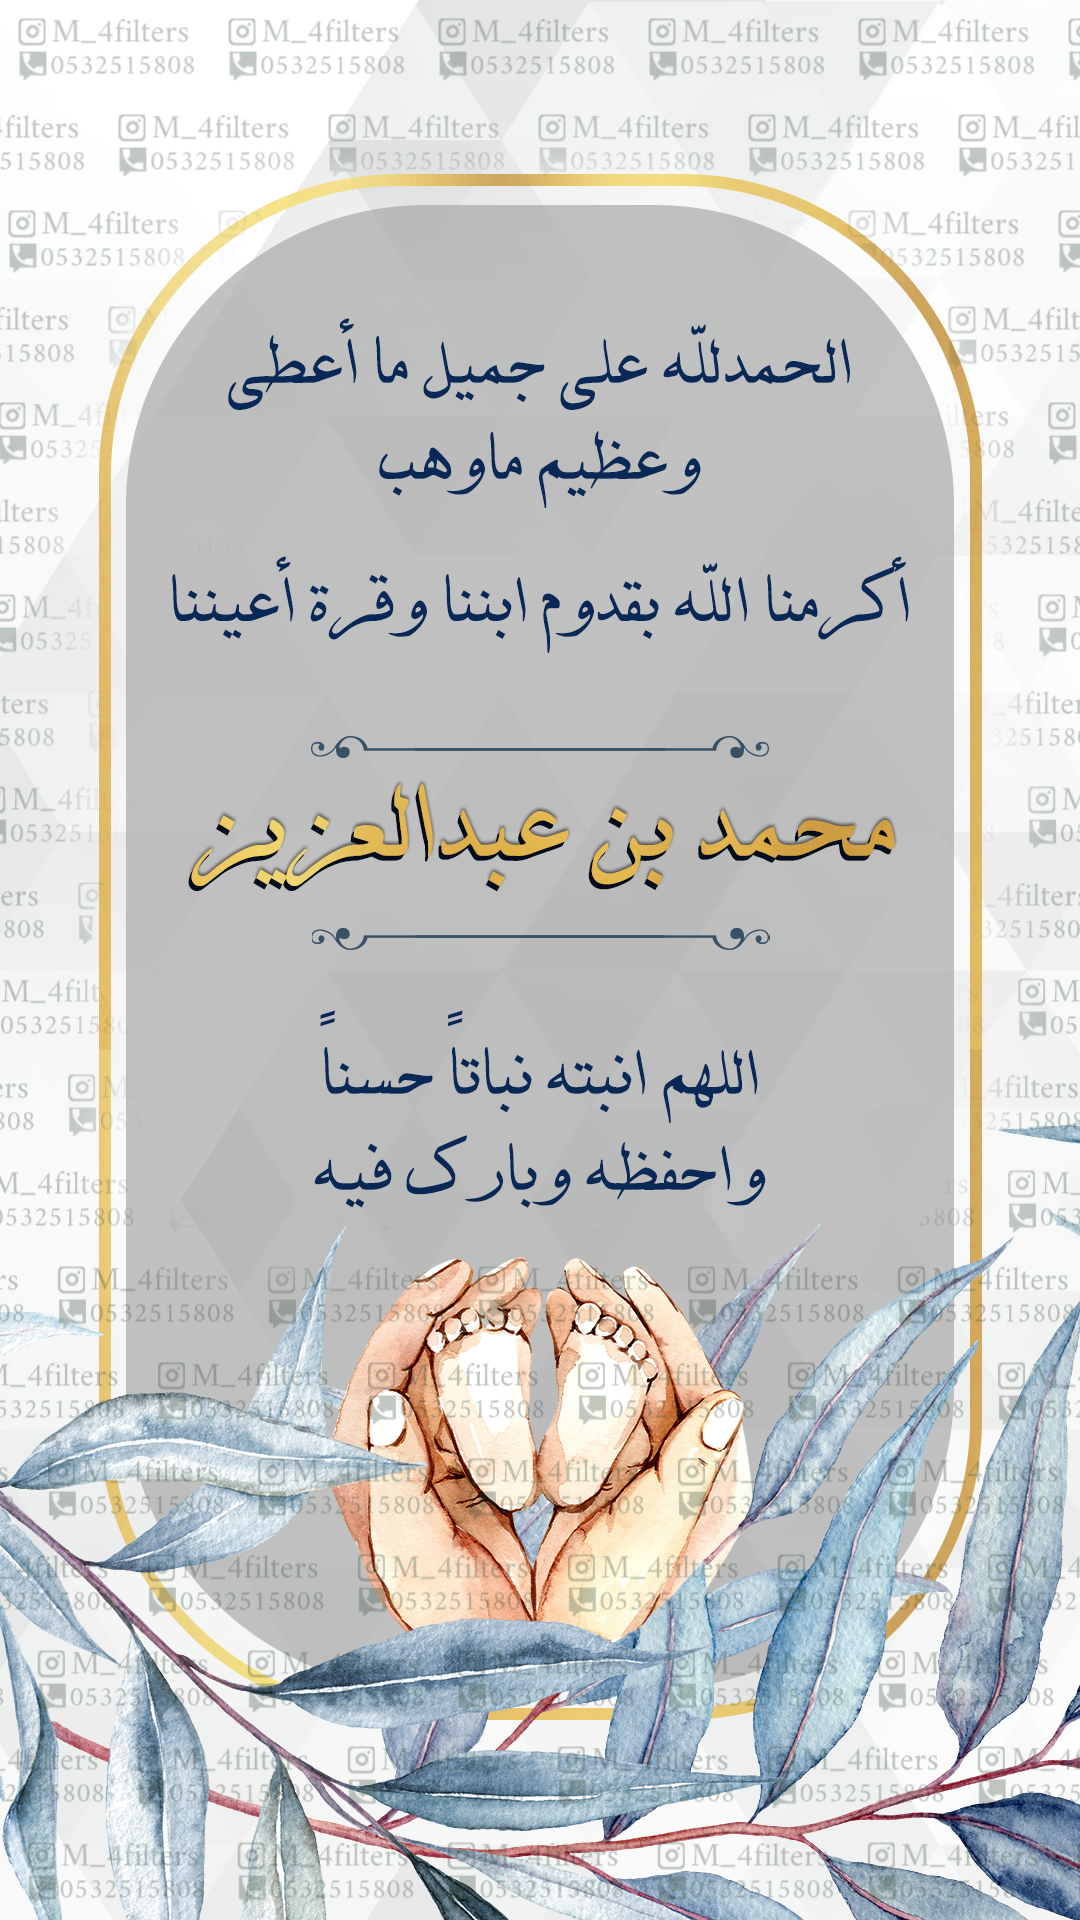 دعوه بشاره مولود دعوه الكترونيه Baby Boy Cards Iphone Wallpaper Vintage Quotes Floral Cards Design